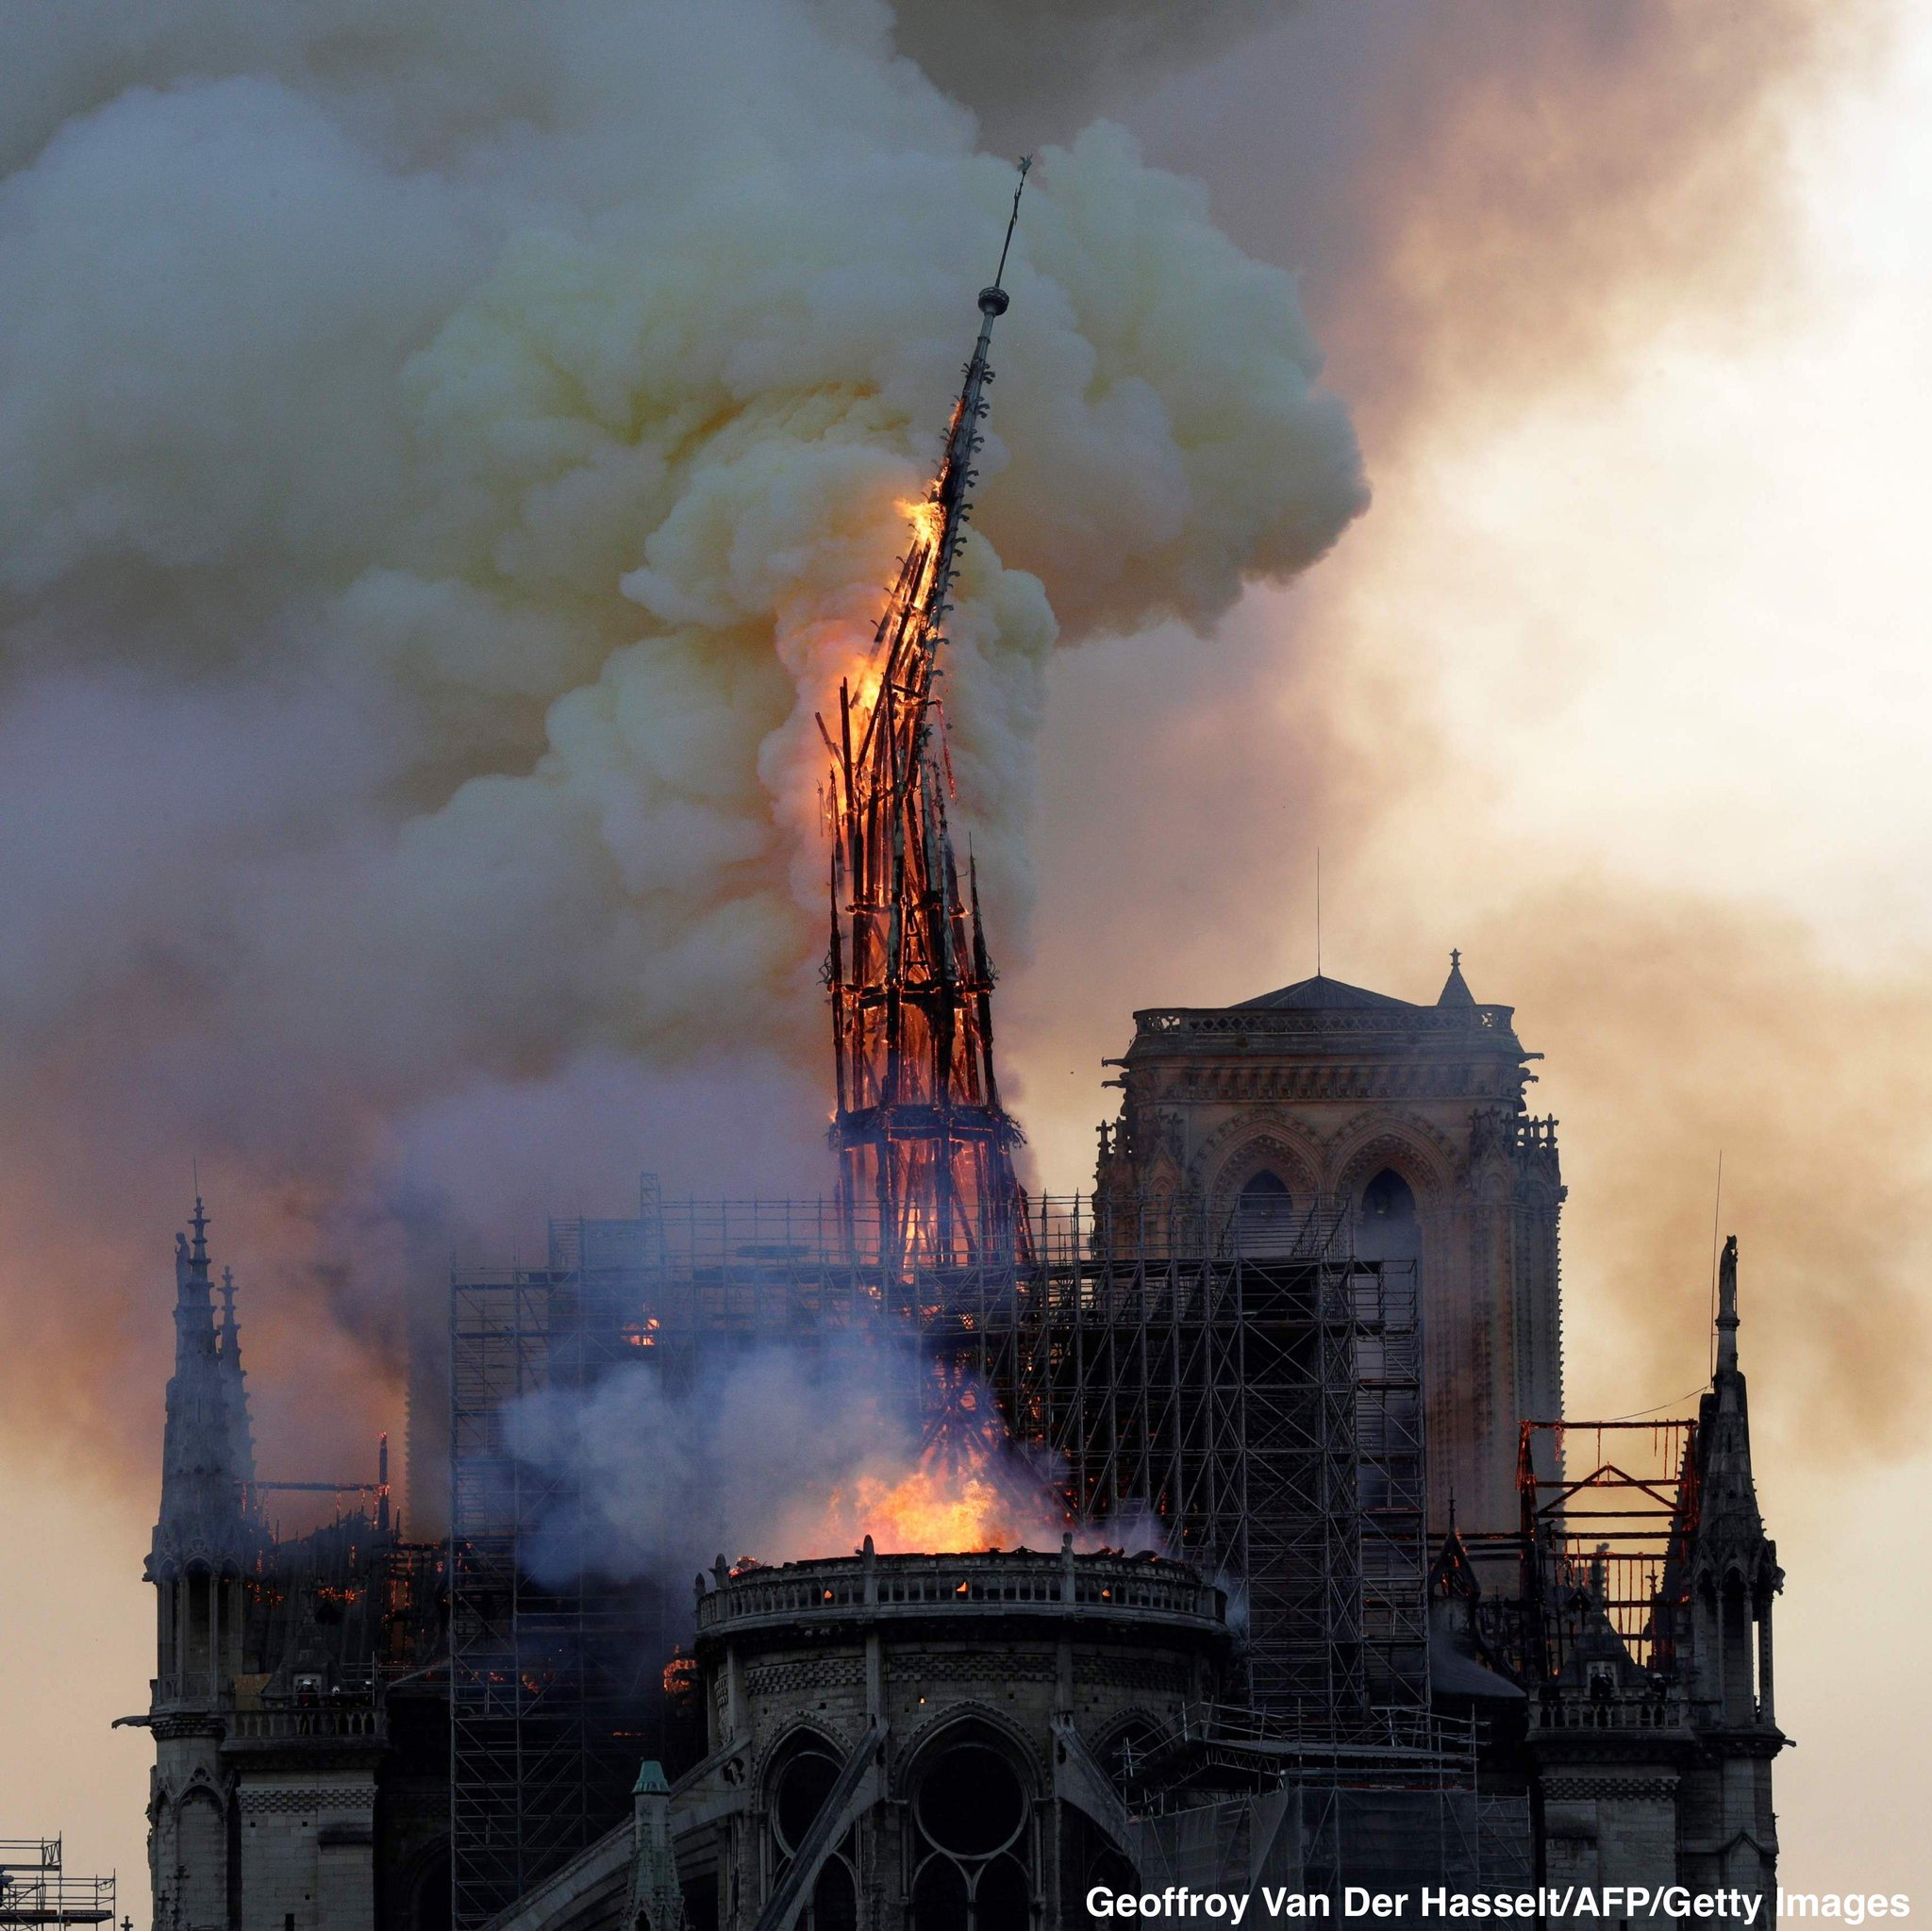 Spire collapses as Notre Dame cathedral in Paris is engulfed in flames. https://t.co/kiOQsrXiTi https://t.co/OwOlyc3upg